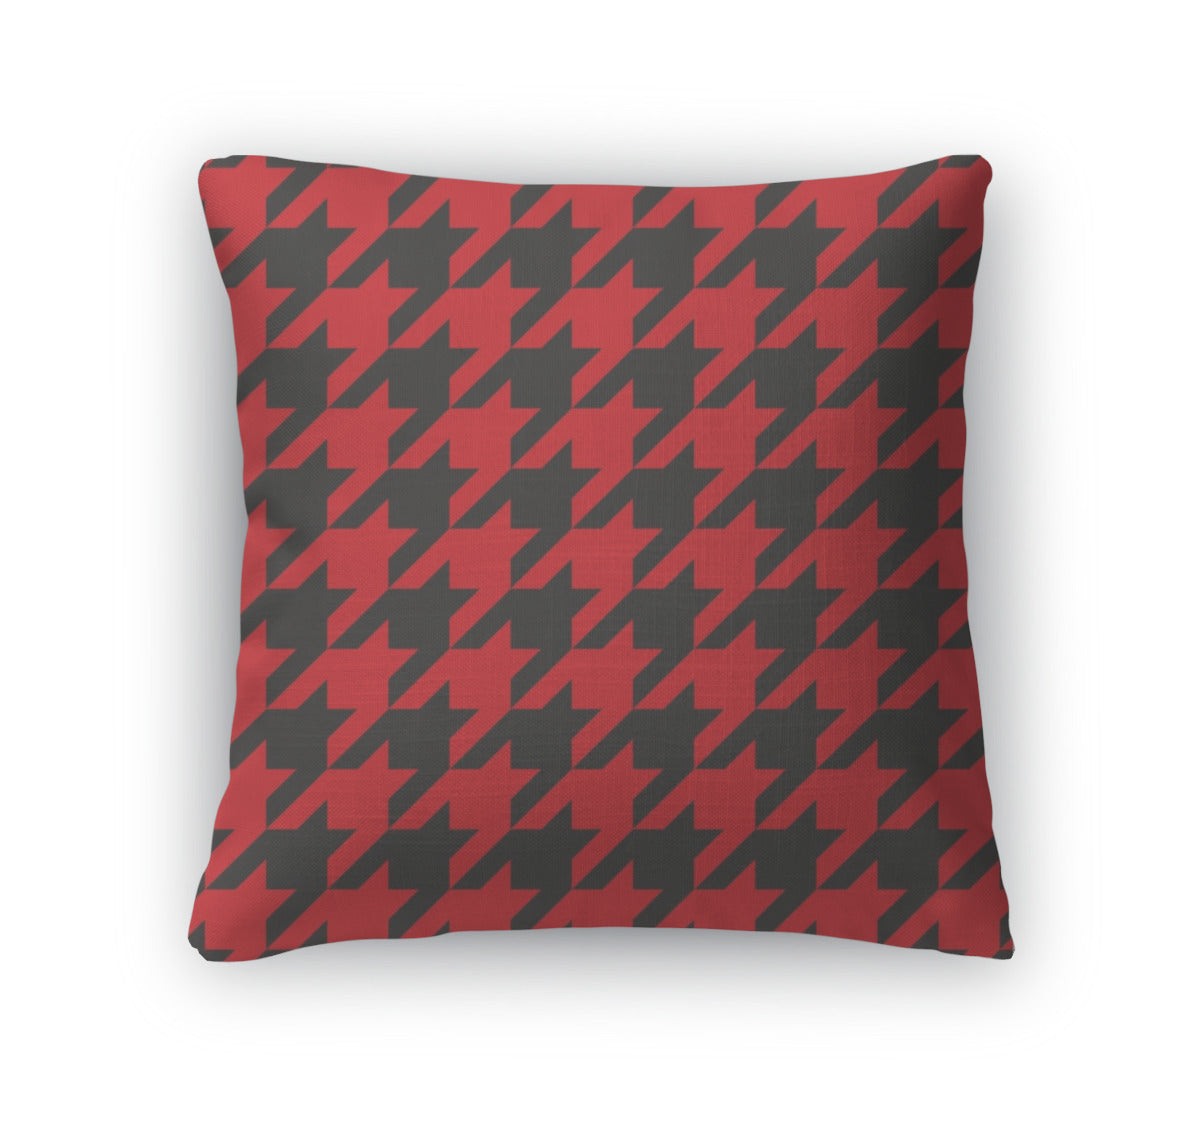 Throw Pillow, Houndstooth Red And Black Pattern Or Traditional Scottish Plaid Fabric For - fashionbests